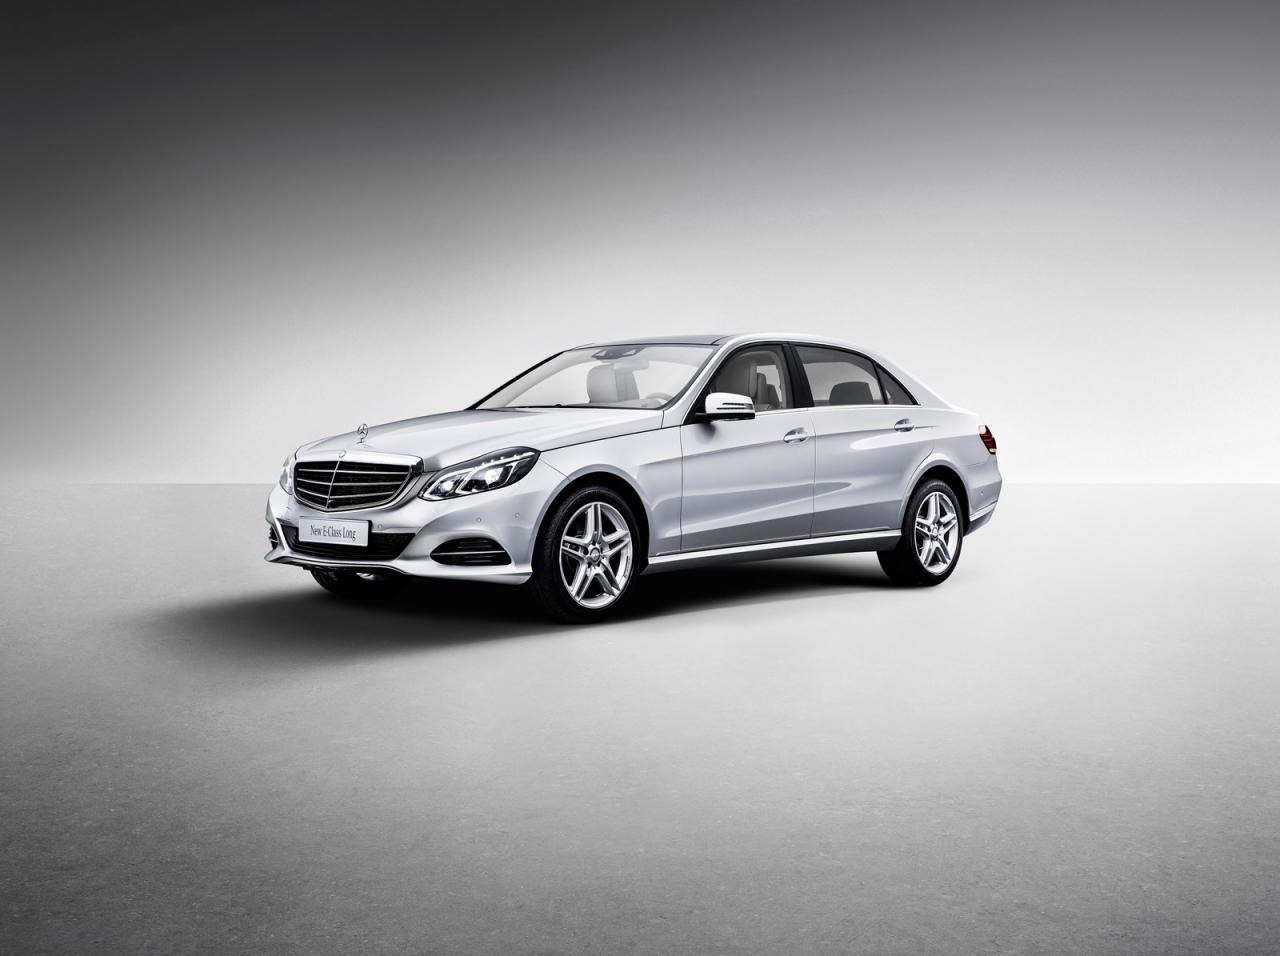 1750806151662354364 The New Mercedes Benz E Class L Highlighted In Shanghai